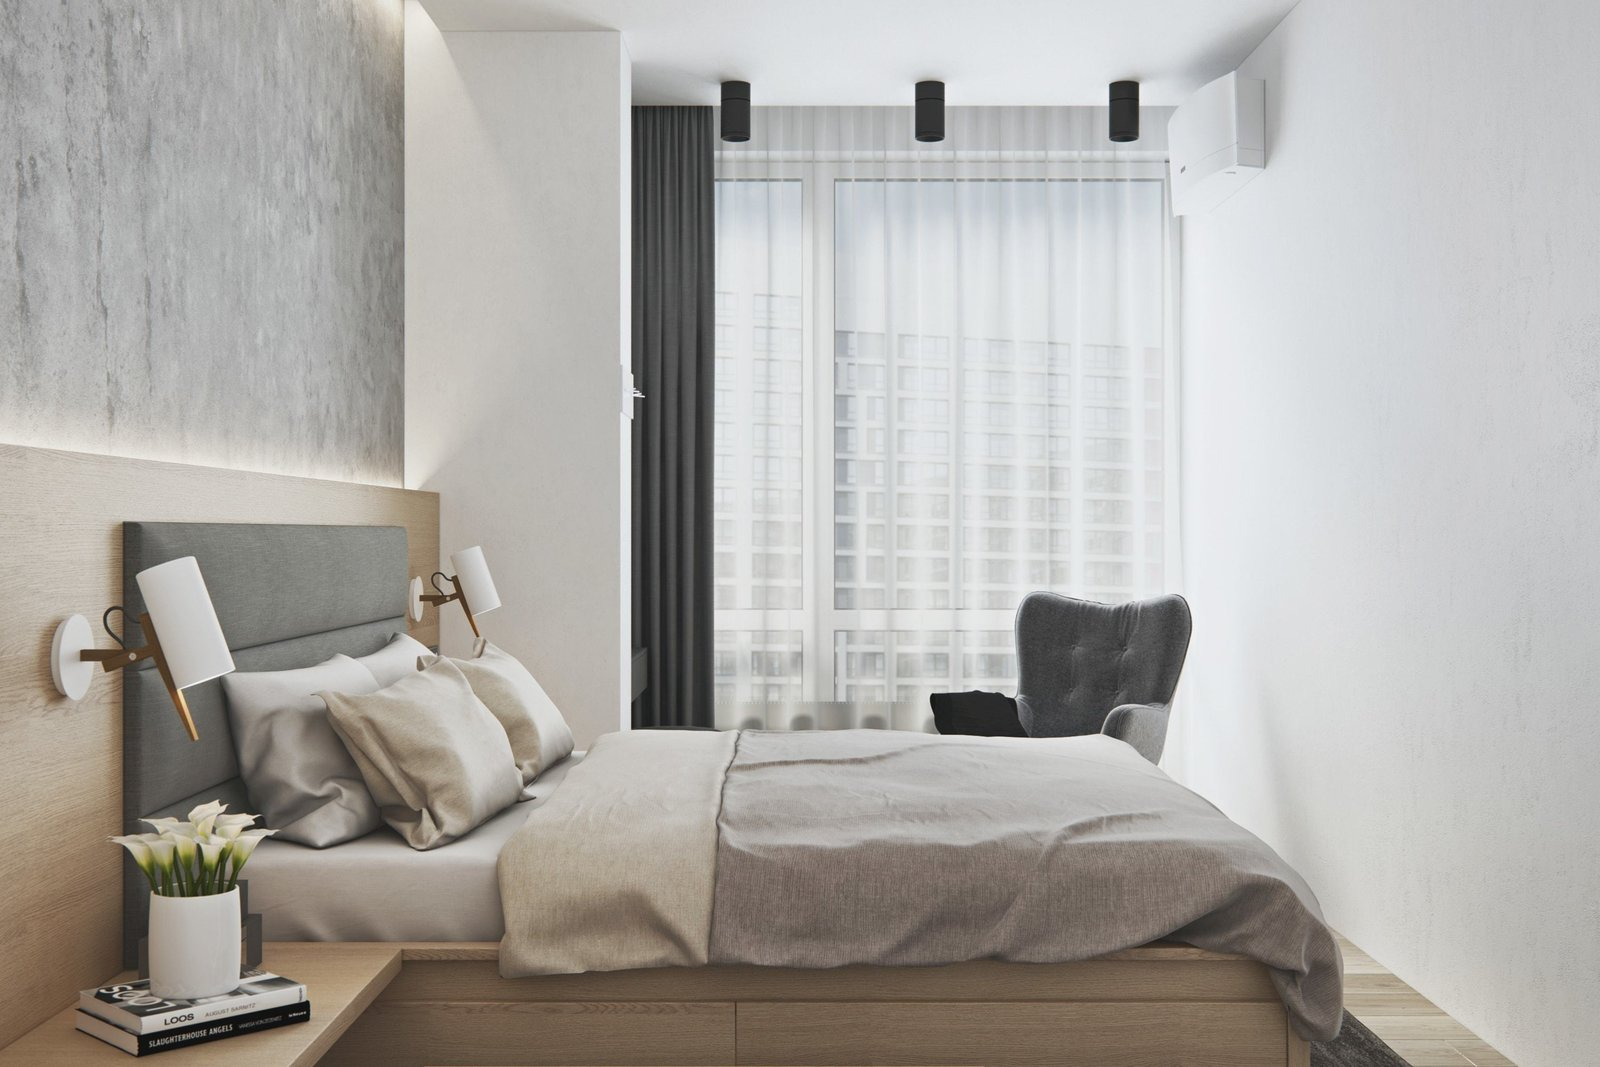 Bedroom and Bed  Interior Design Project in Contemporary Style by Geometrium